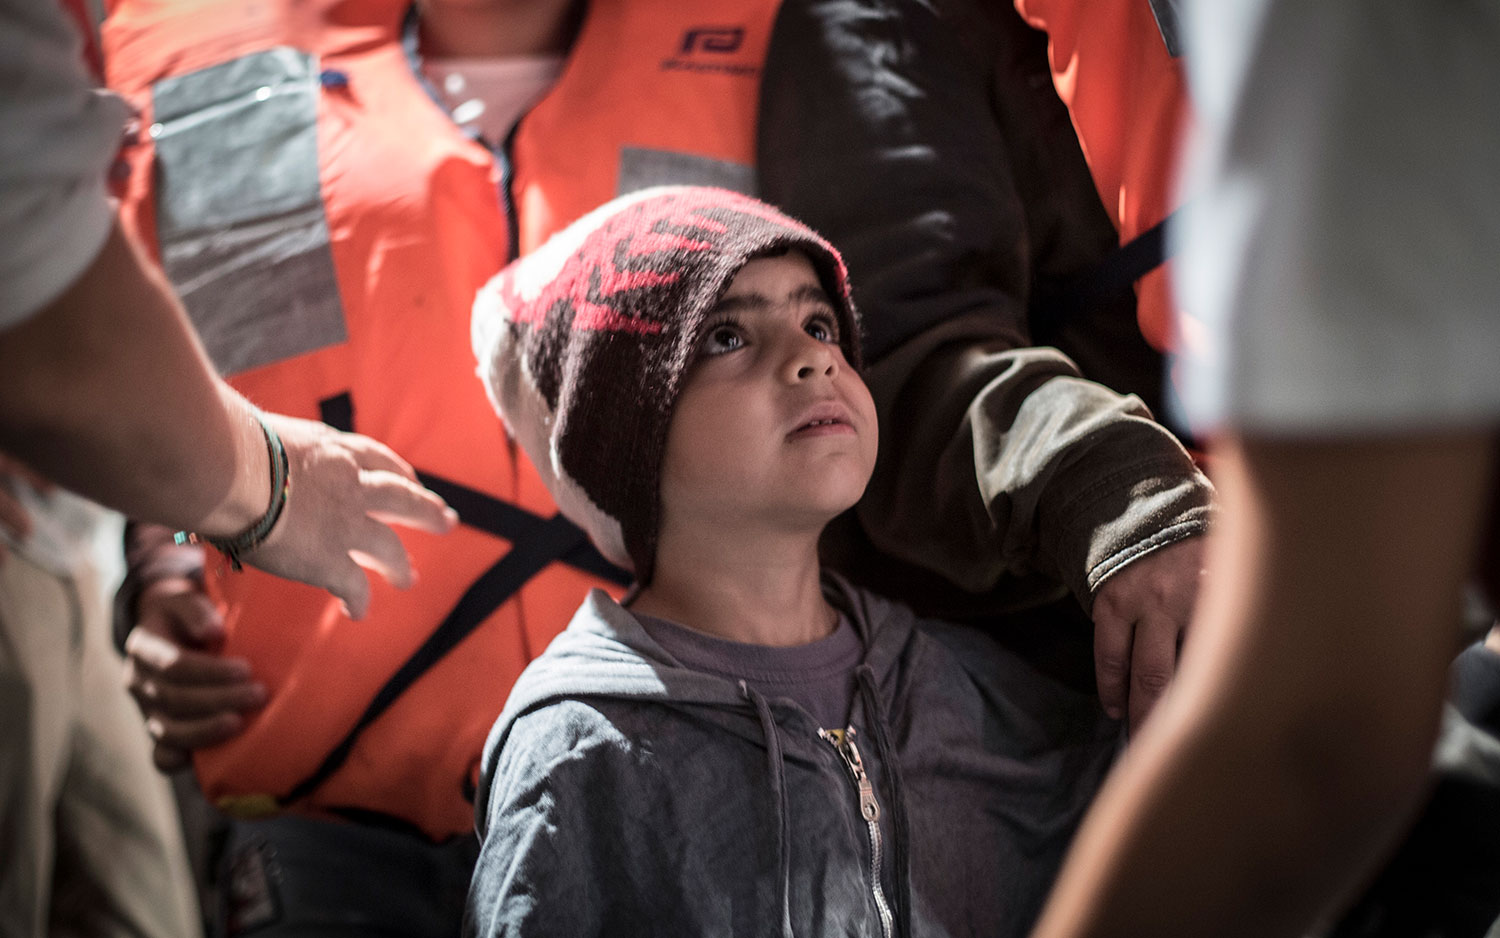 A child arrives on board the Aquarius. October 11, 2017.